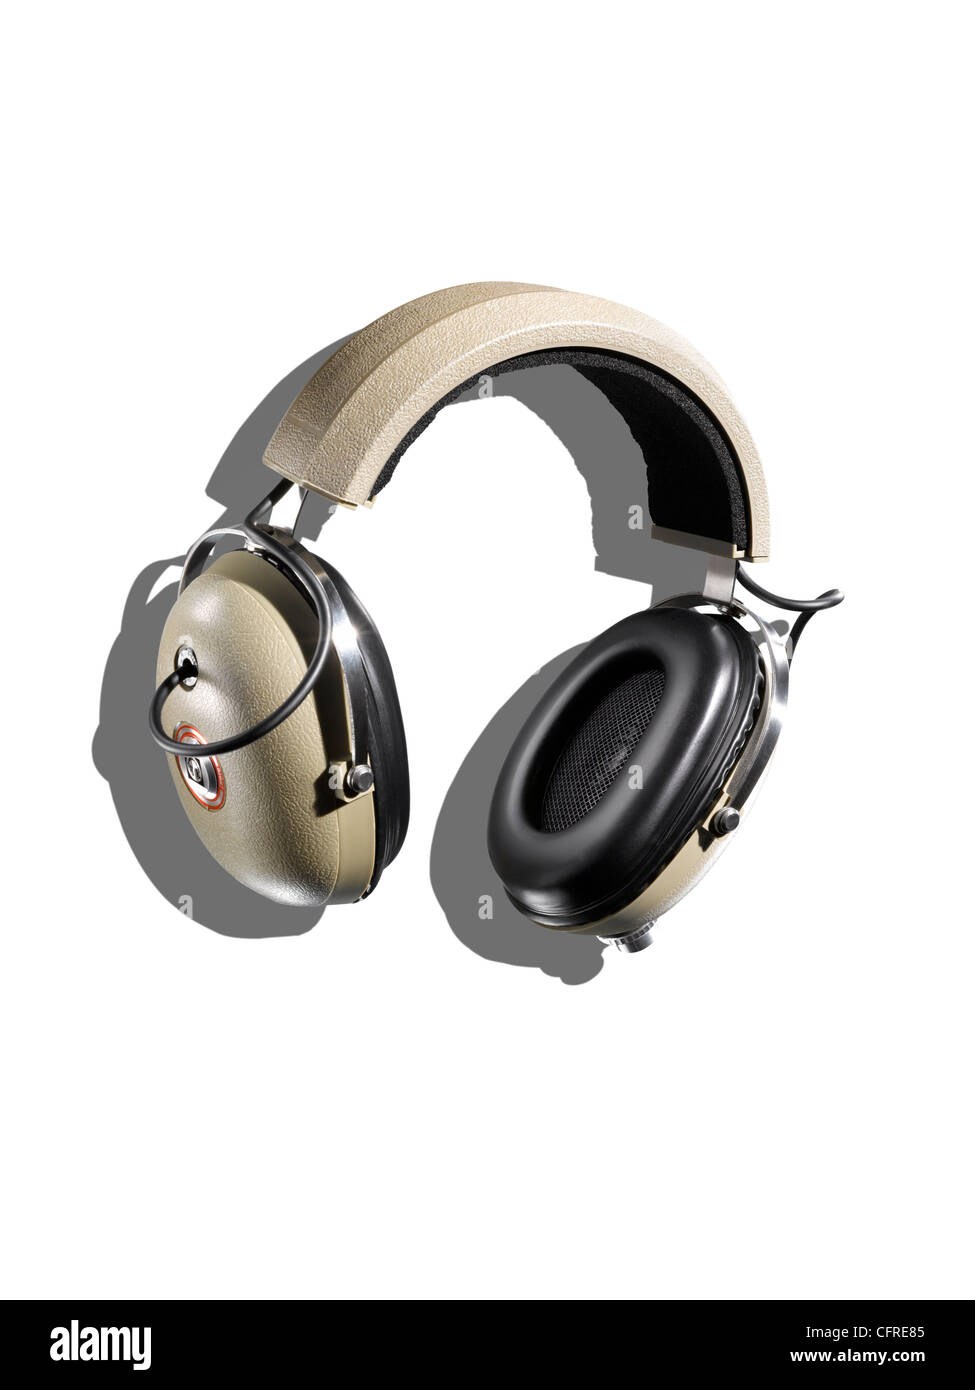 Headphones on a white background with creative shadow Stock Photo